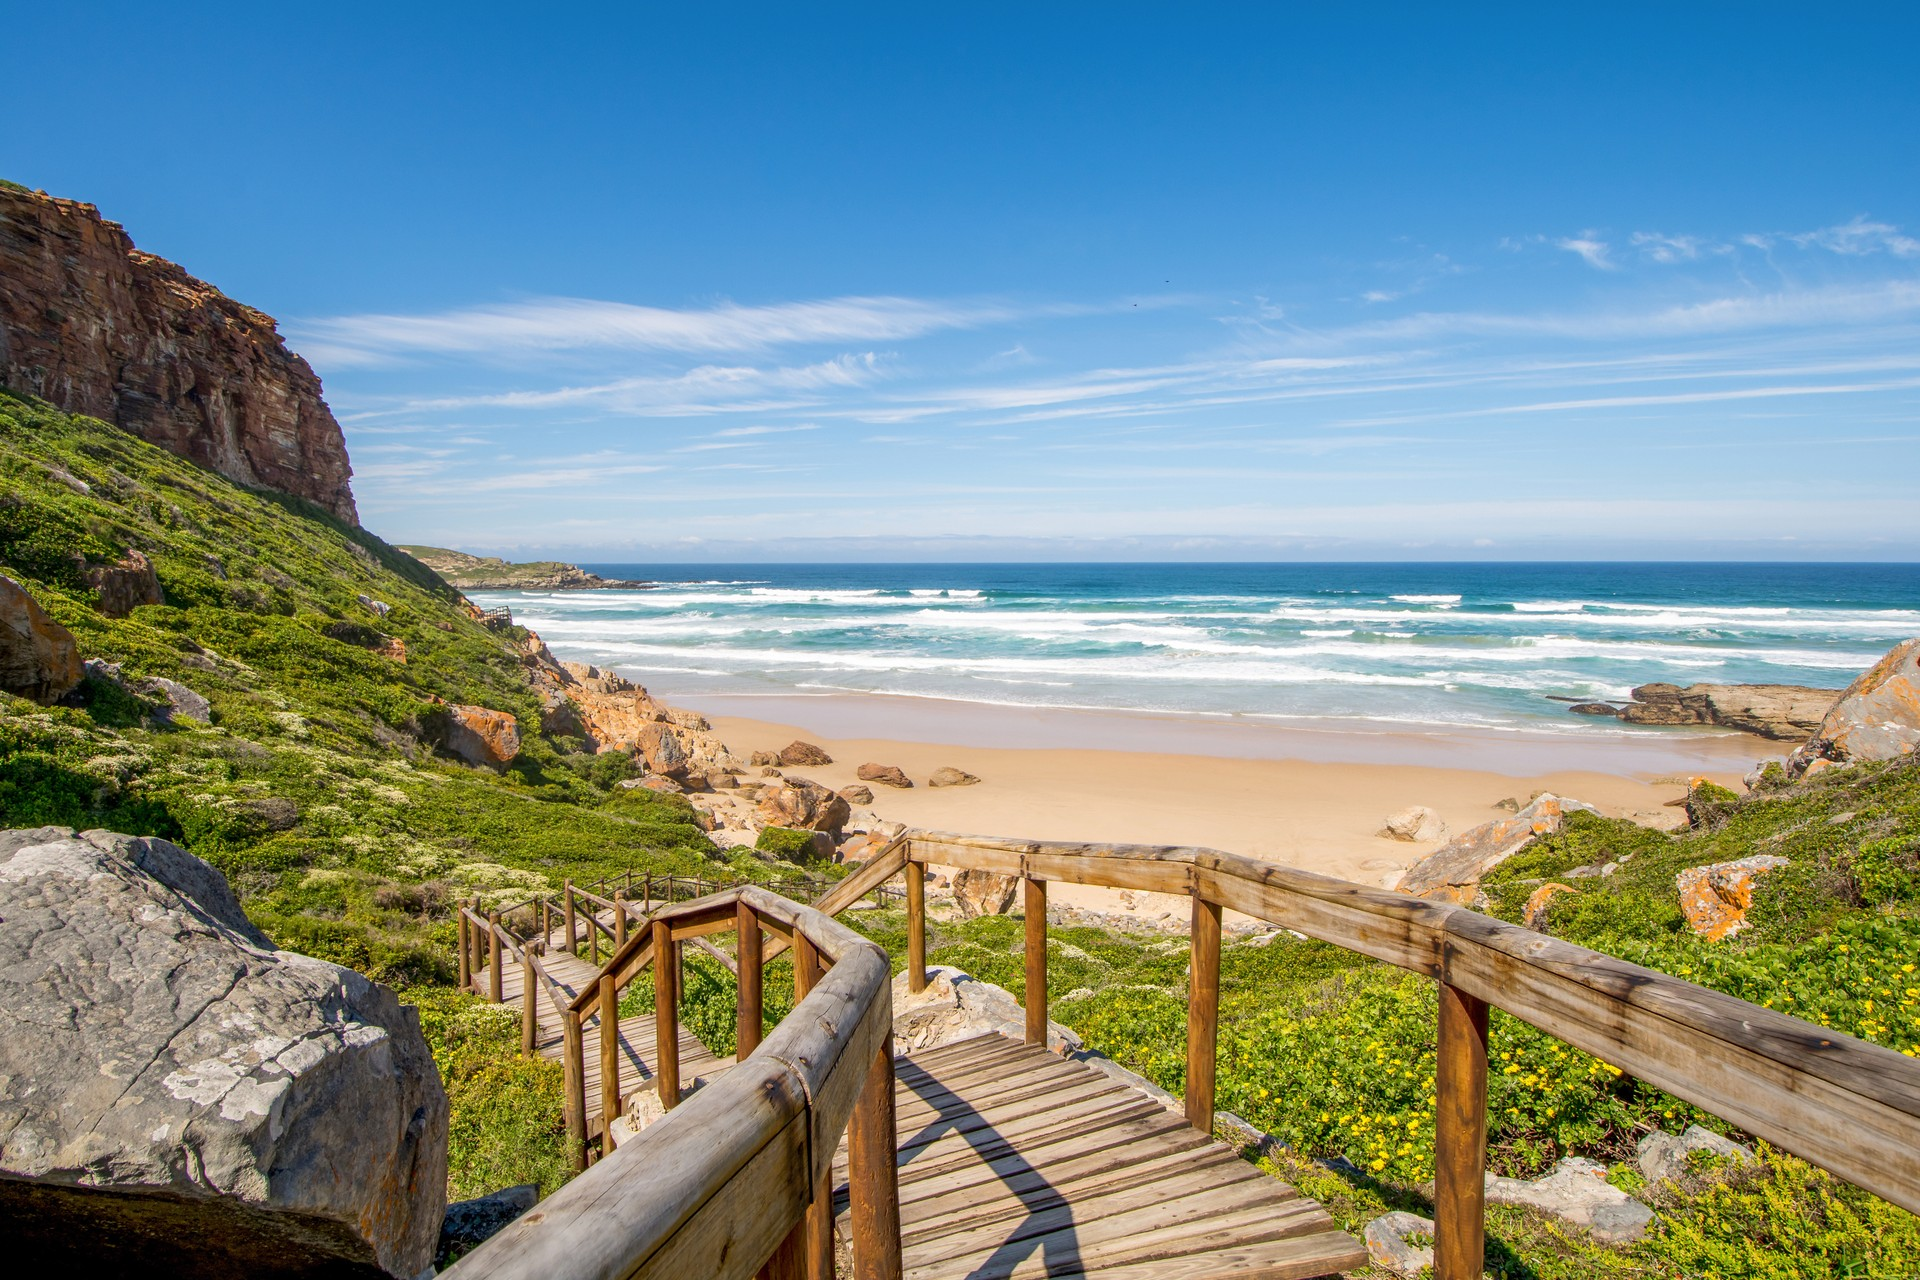 Beach at Robberg on the Garden Route